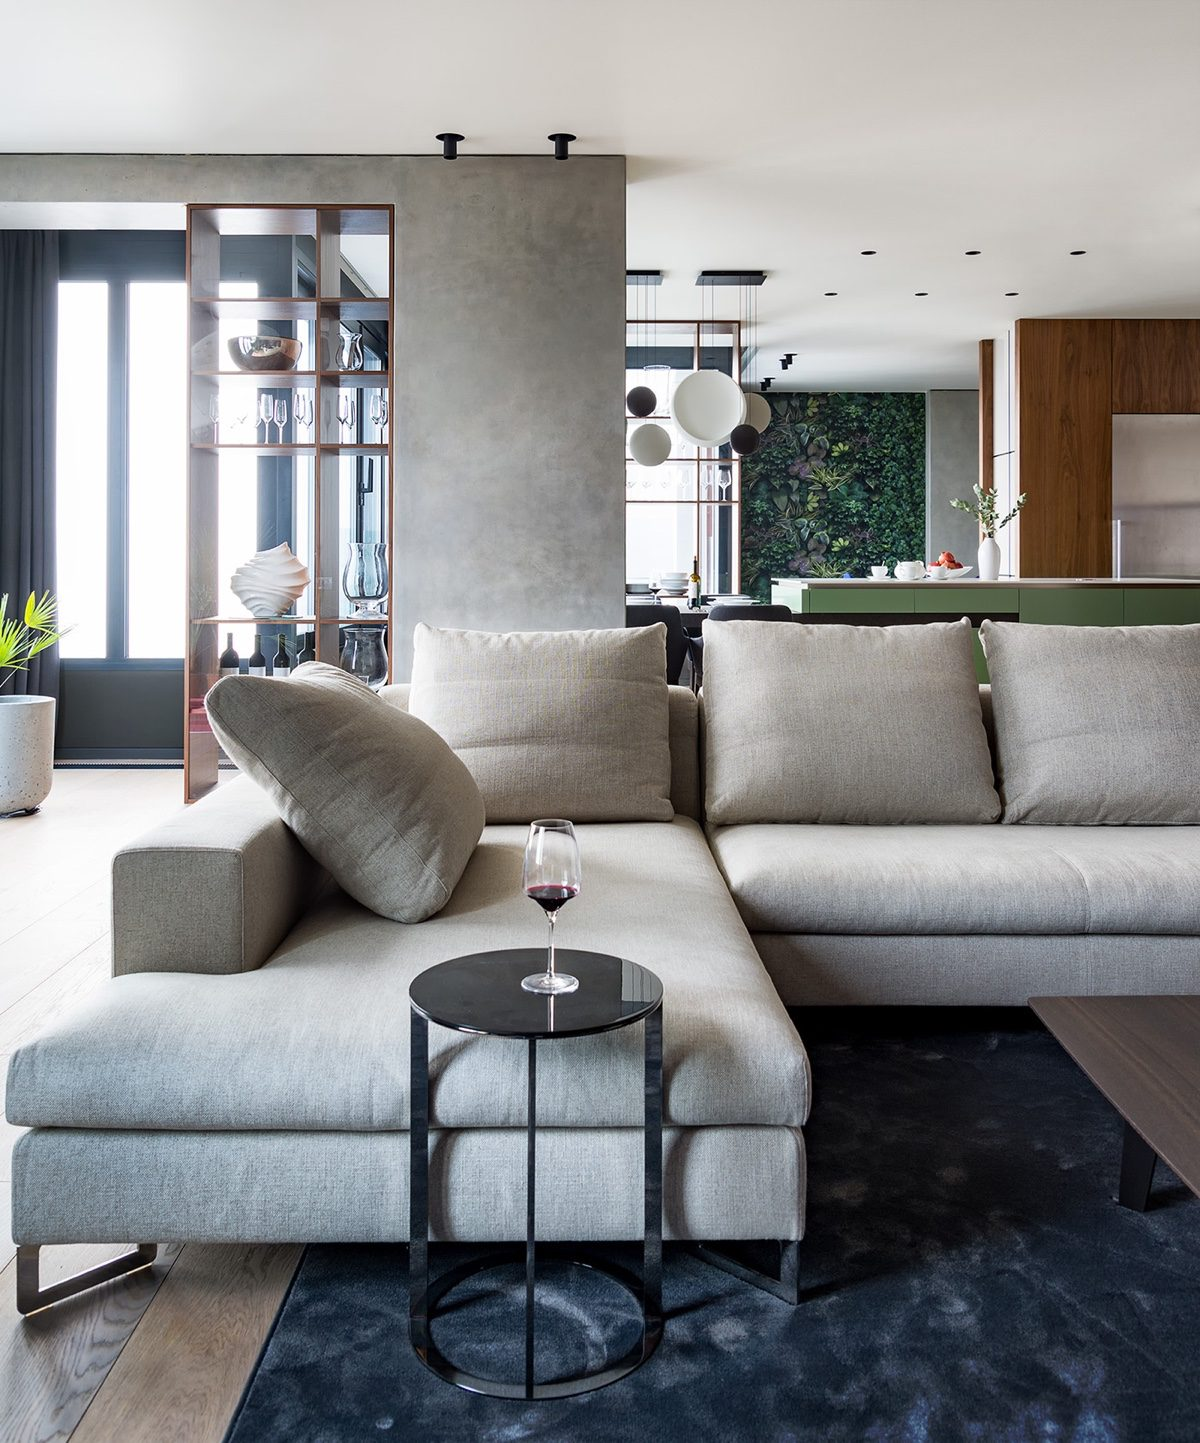 Living Area Into Kitchen - Modern perfection in kyiv apartment